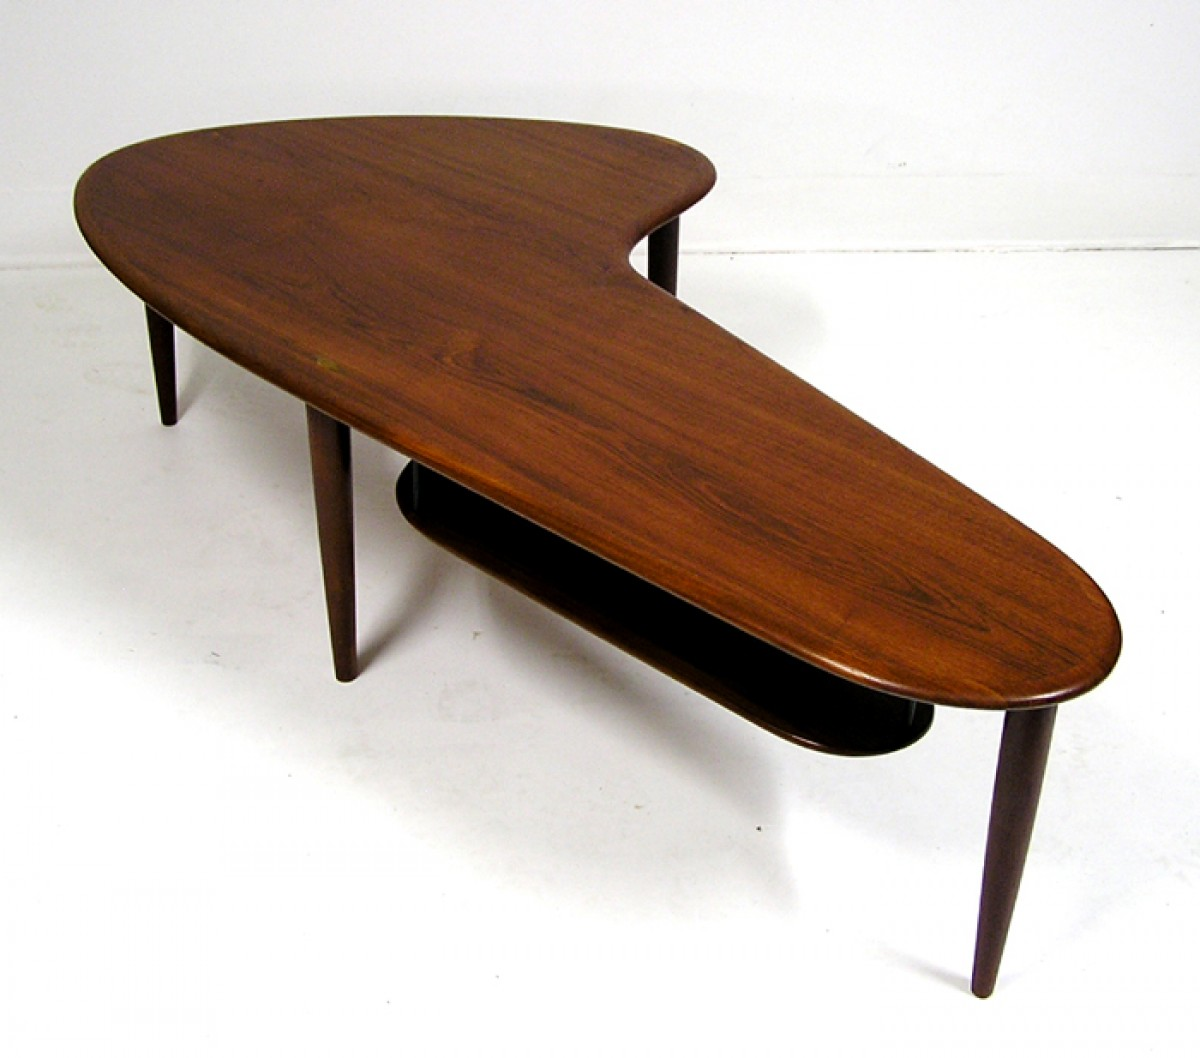 Teak Ottoman Coffee Table: Teak Boomerang Coffee Table